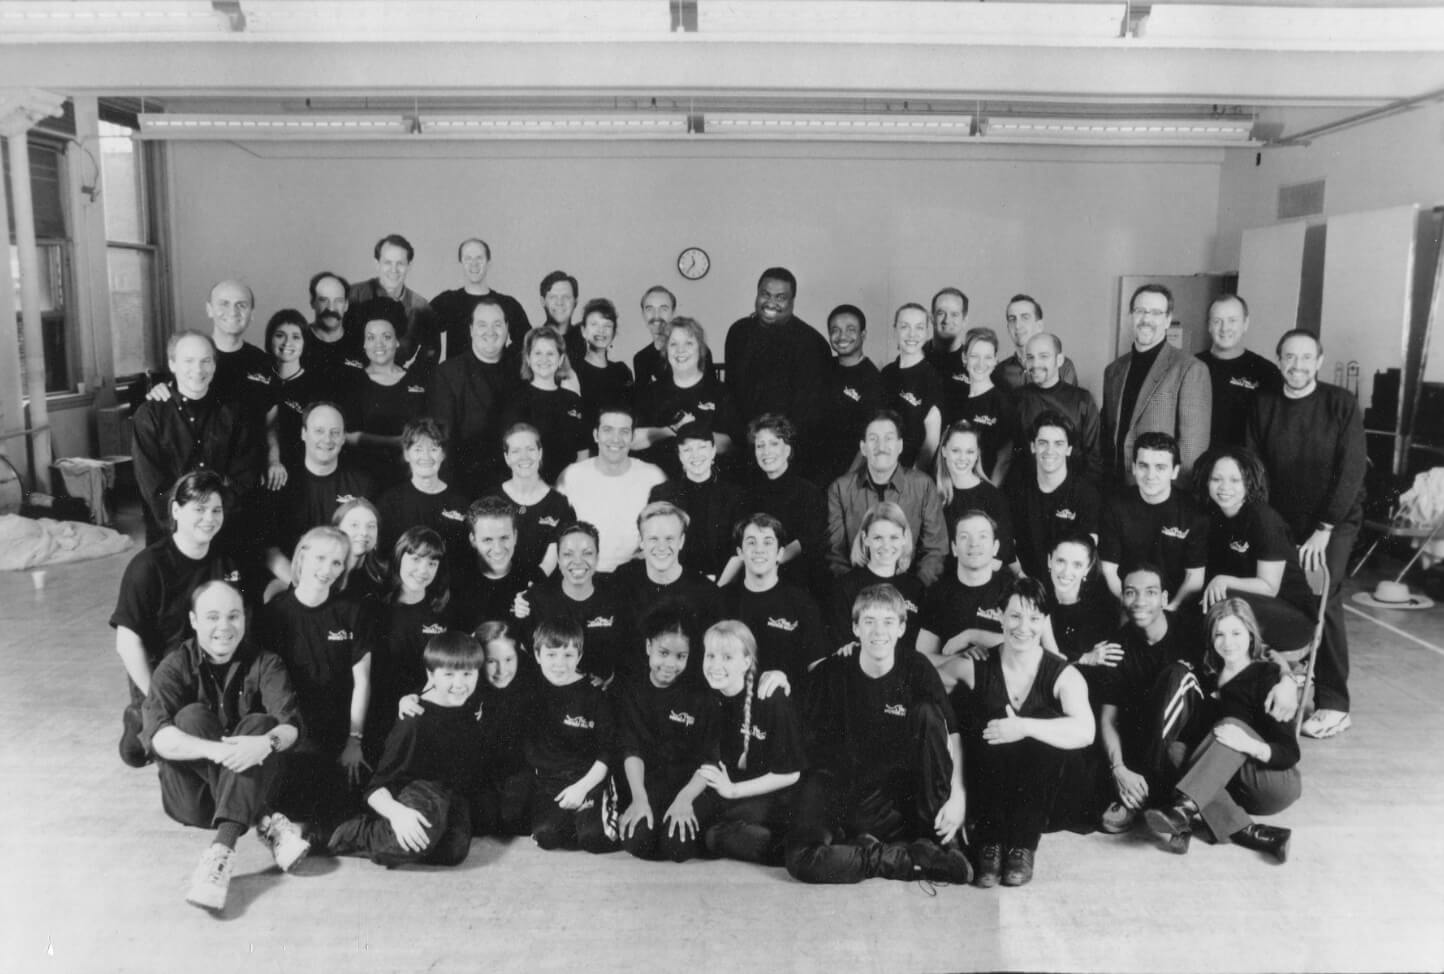 Susan Stroman with the full cast and creative team of The Music Man in a black and white photo.